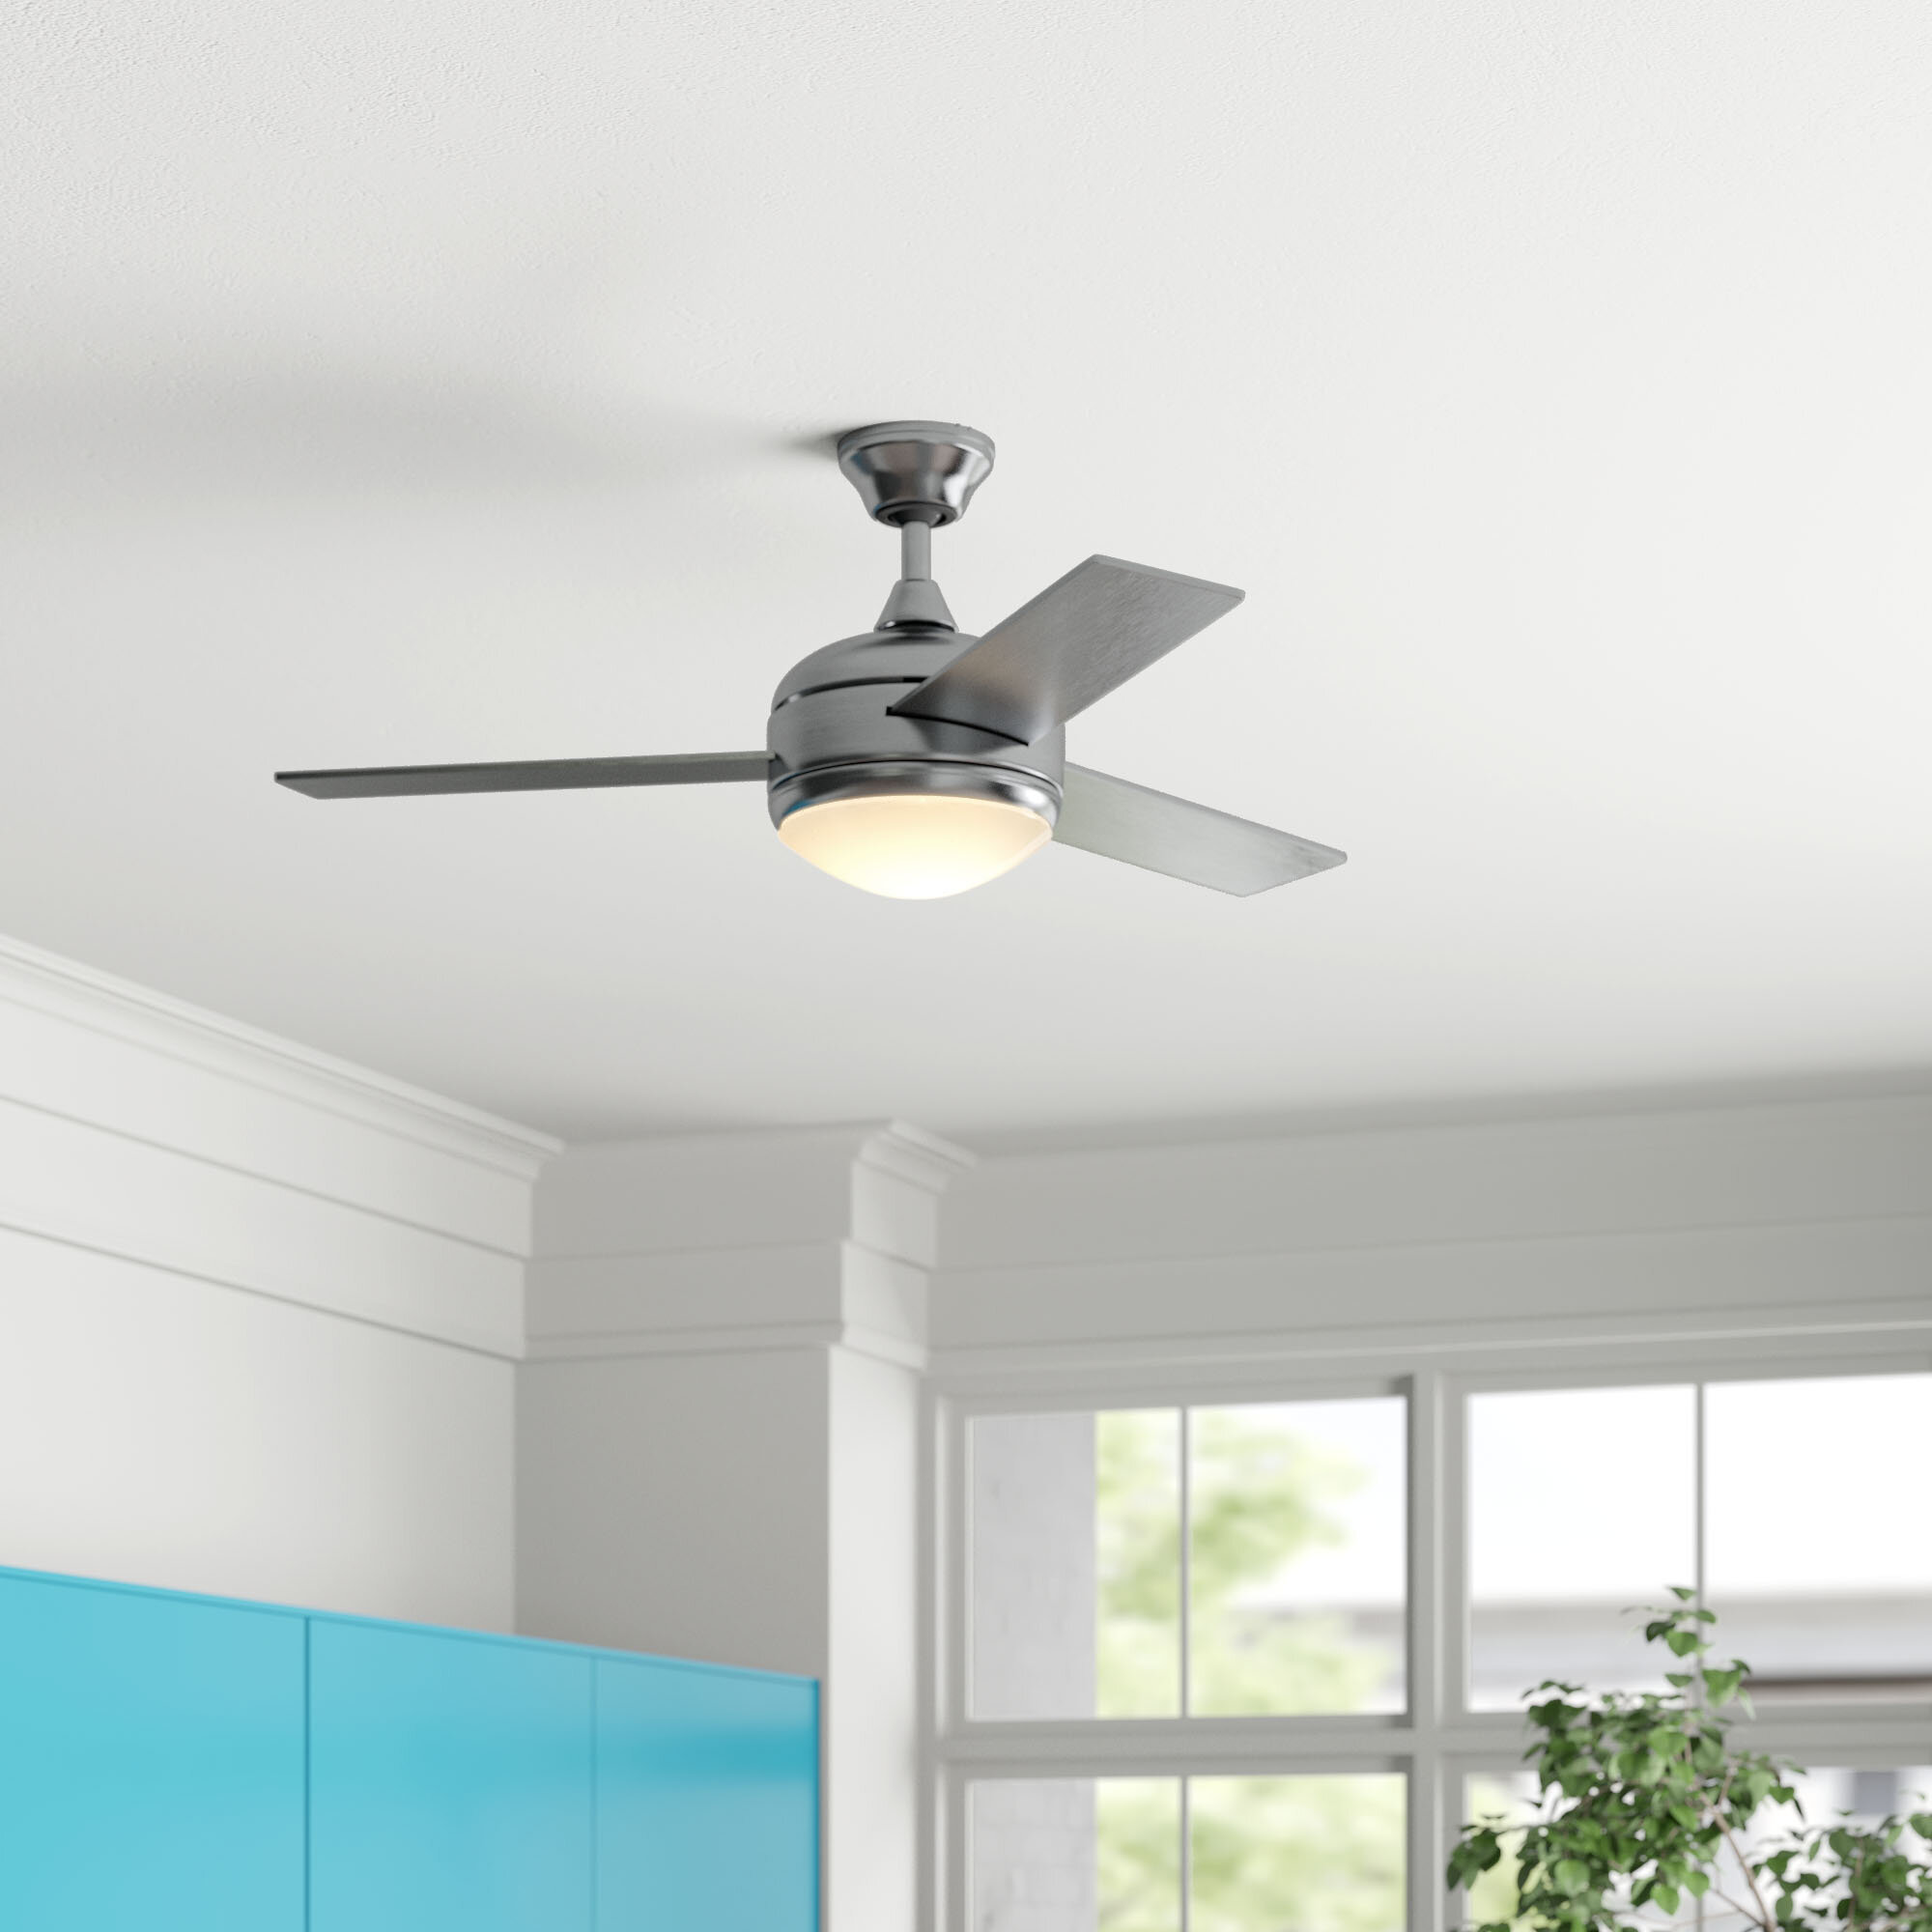 Zipcode Design 48 Dennis 3 Blade Ceiling Fan With Remote Control And Light Kit Included Reviews Wayfair